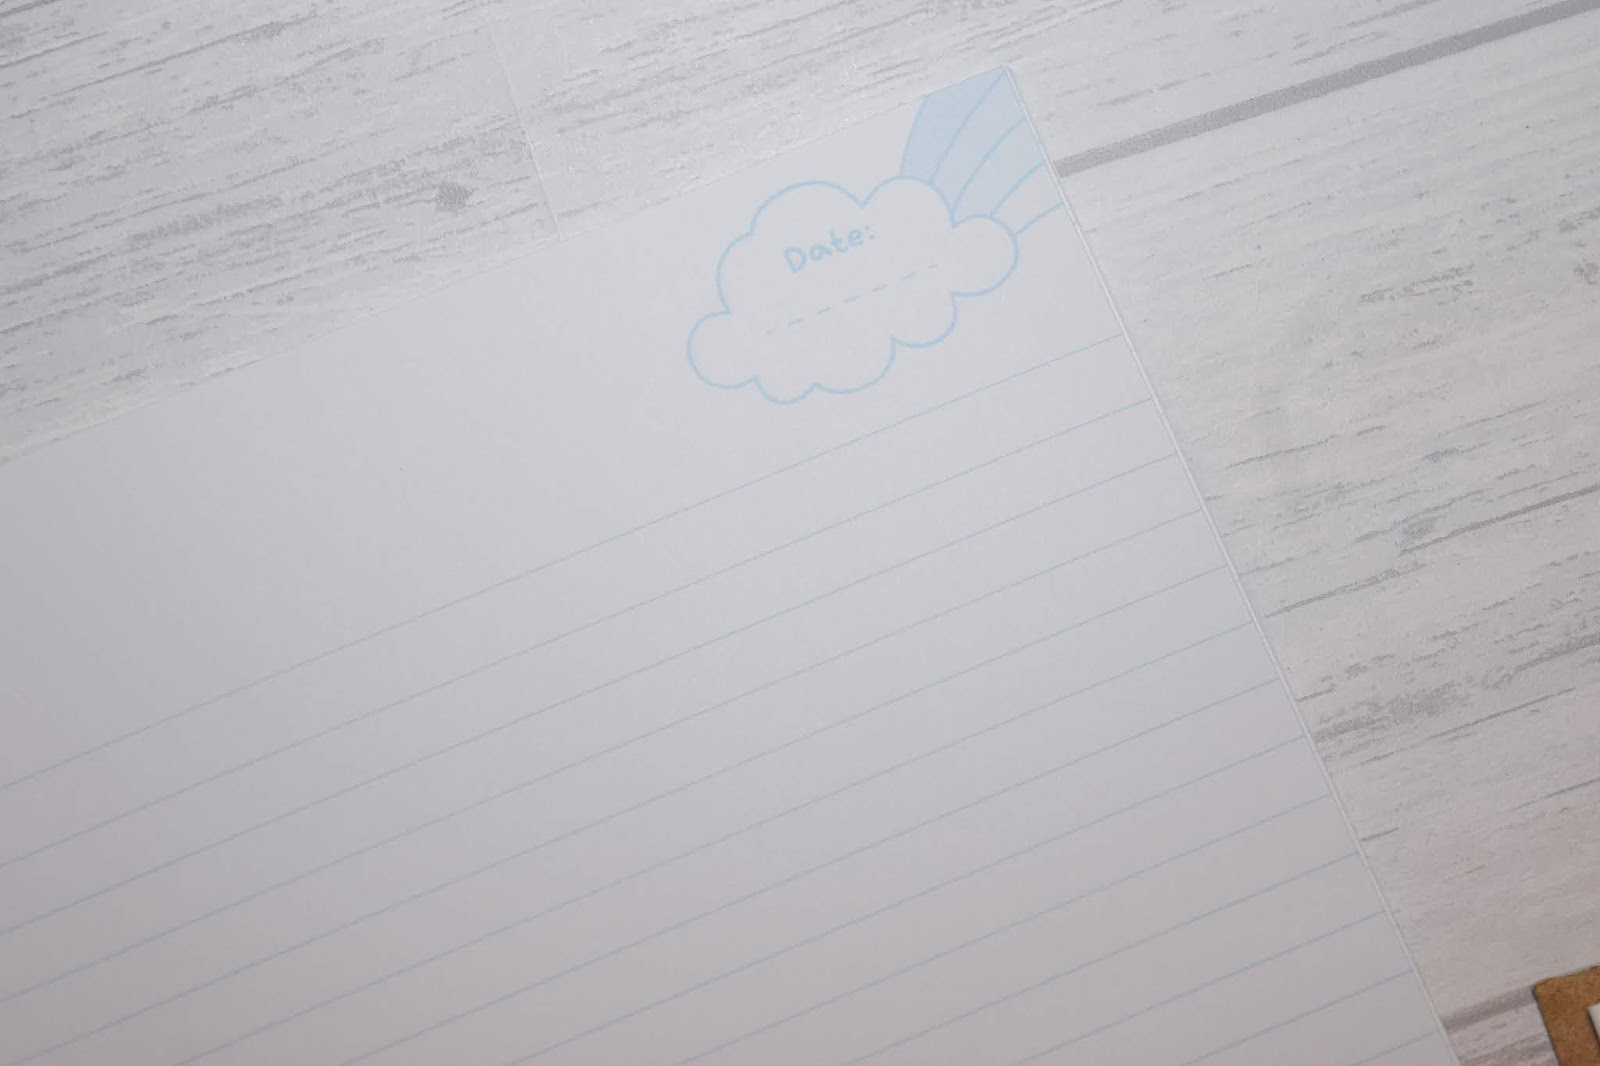 White paper with blue lines and a space to write the date in a cloud on the top right corner under the word date.